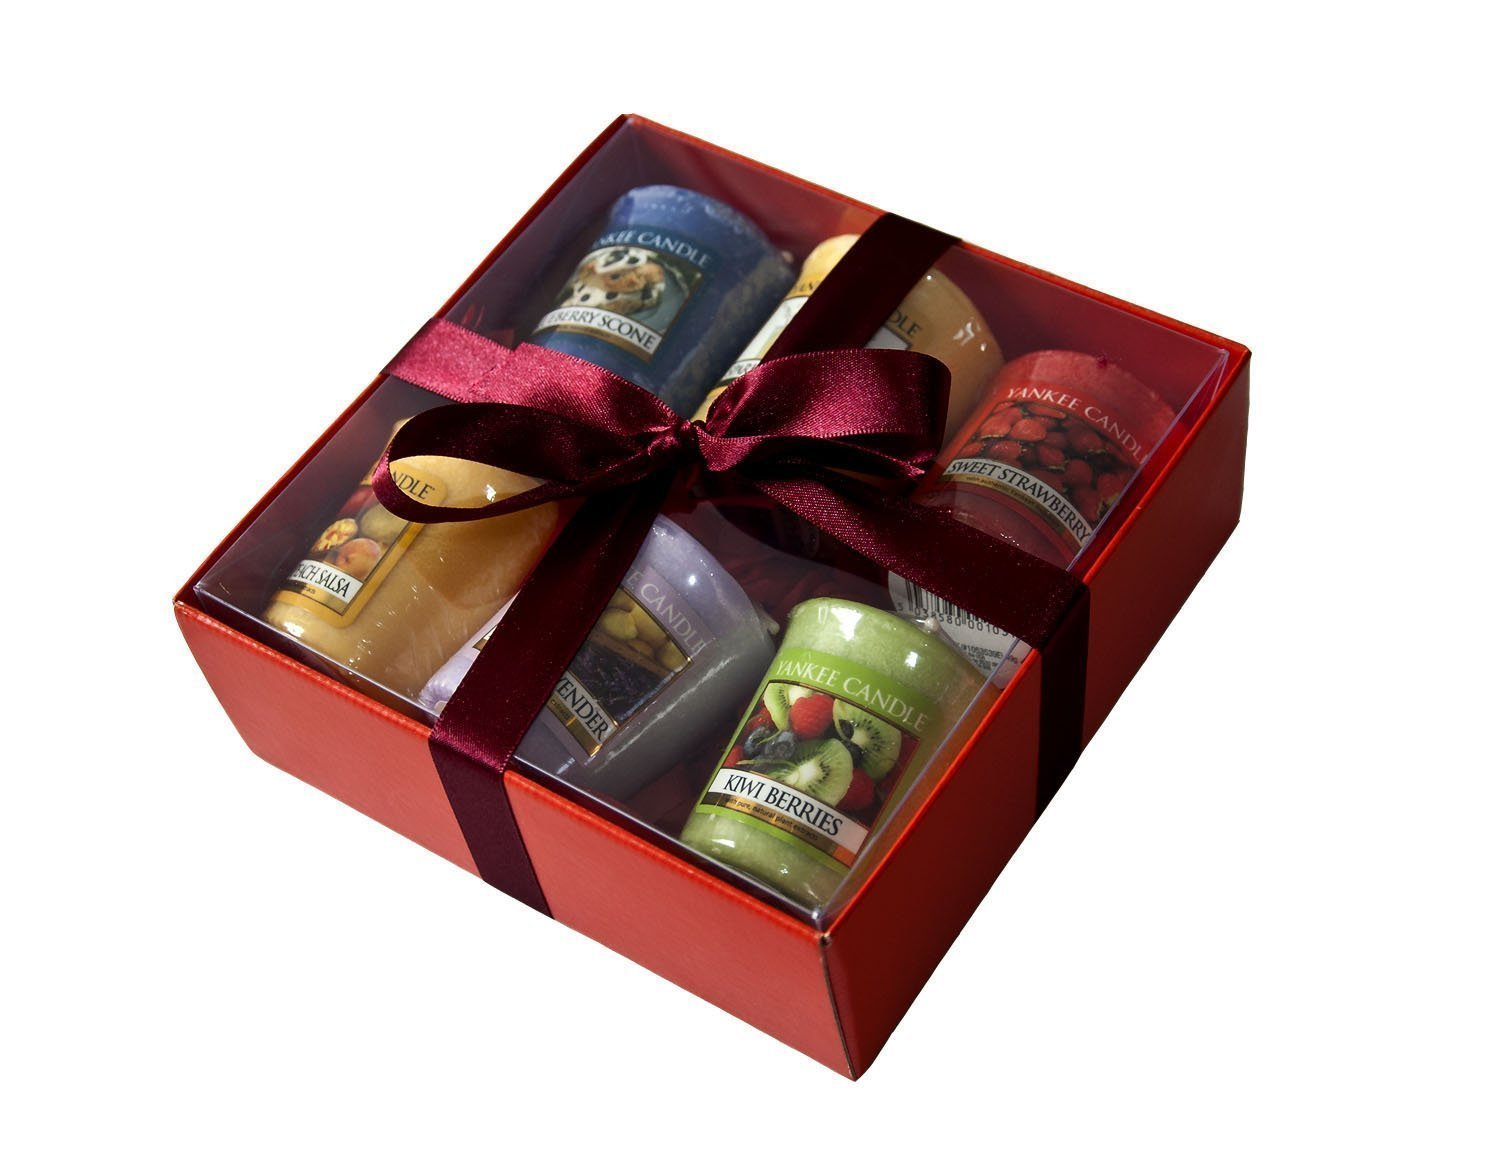 2 x Yankee Candle Fruit Samplers -6 Pack including MANGO PEACH SALSA- Gift Wrapped in Red Box & red tissue.